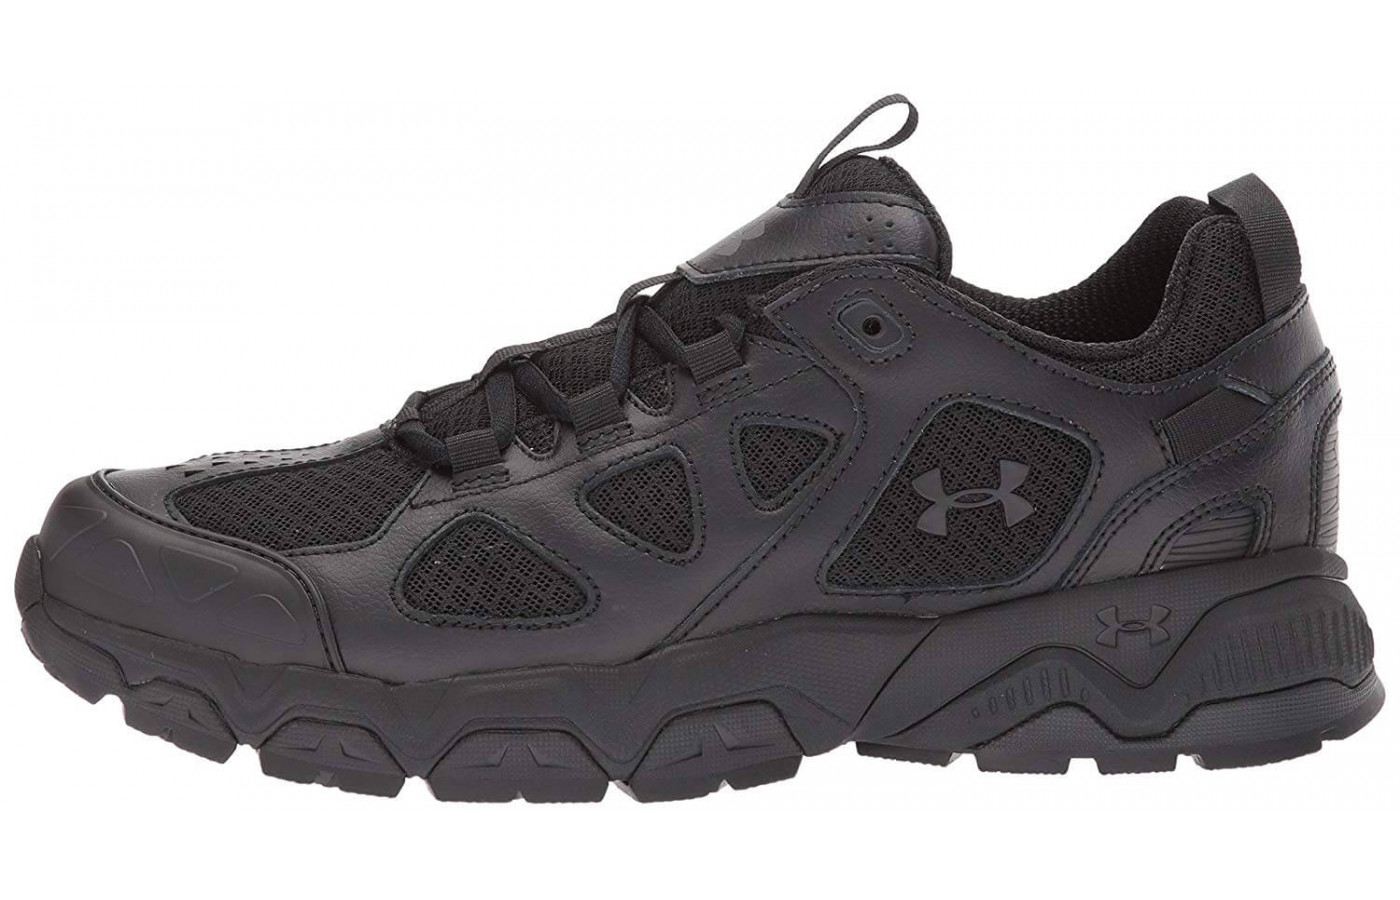 The medial side of the Under Armour Mirage 3.0.